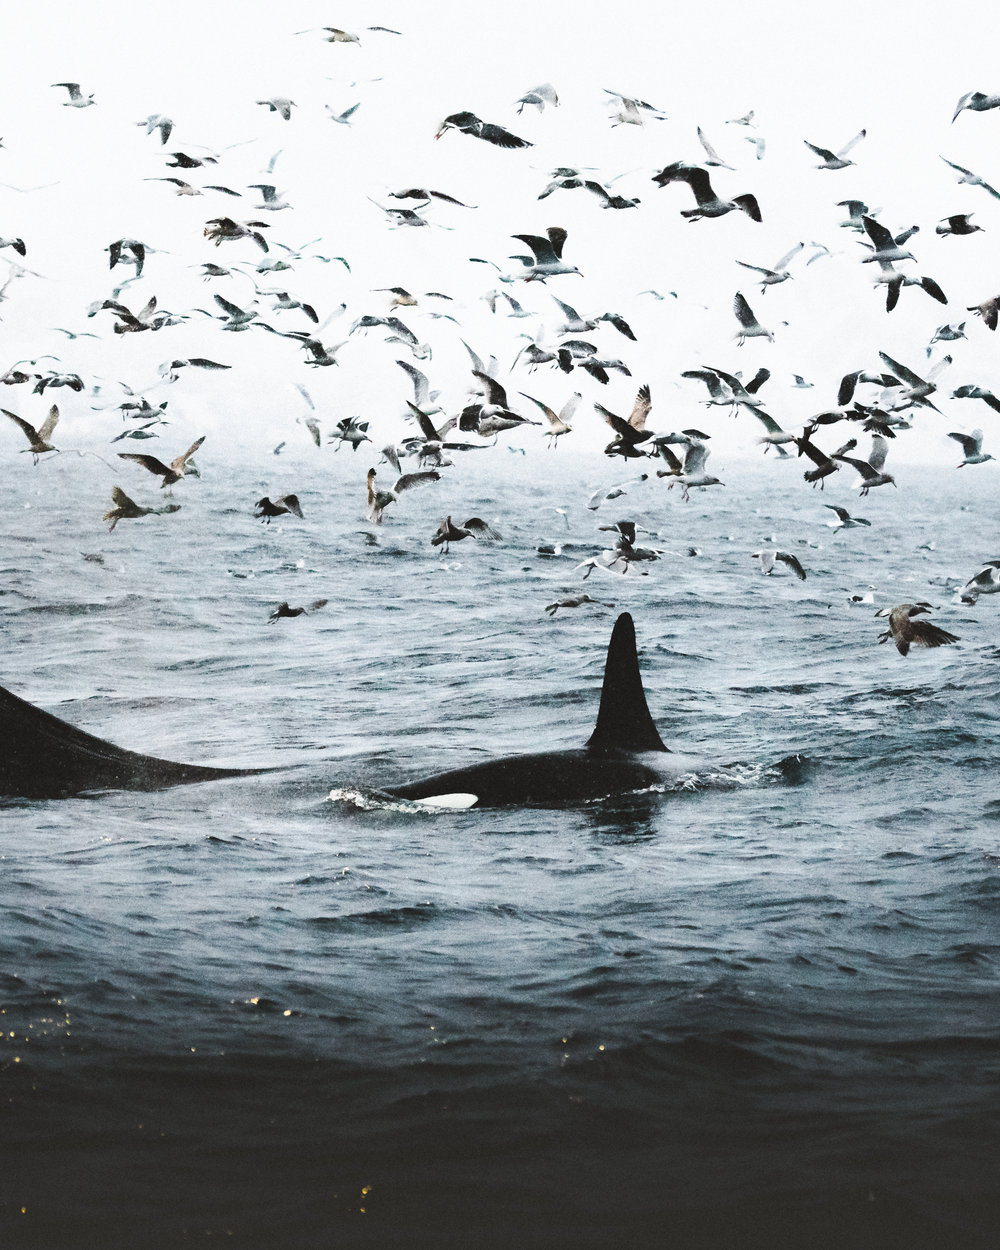 Orcas feeding on fish in open sea, Norway